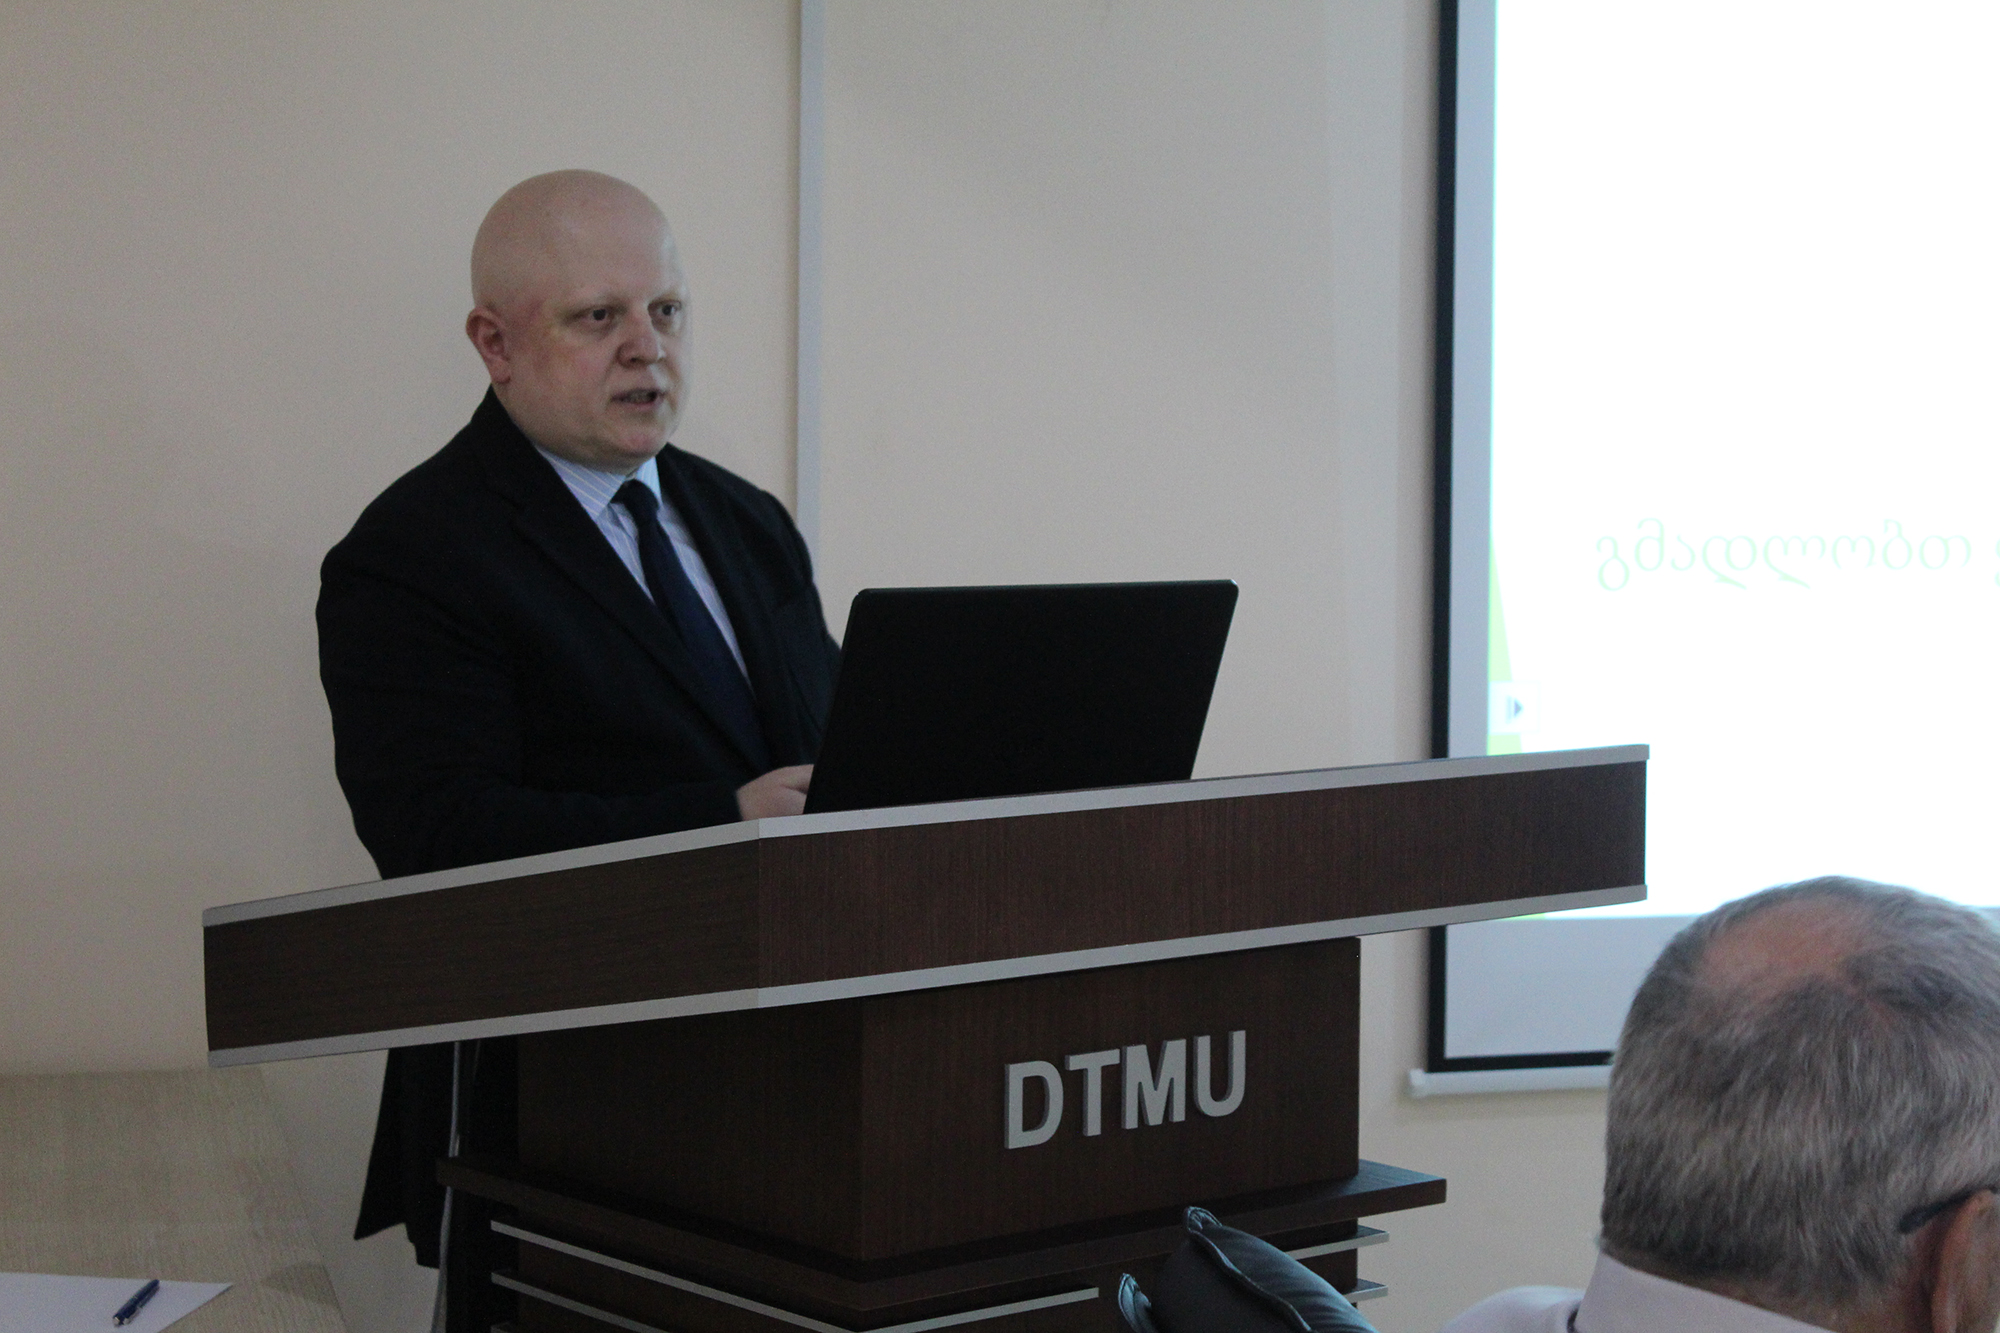 The dissertation defense of PhD candidate Giorgi Papiashvili with title ,,Association of Paroxysmal Supraventricular Tachycardia with Personality Type, Anxiety and Quality of Life and Influence of Catheter Ablation on Anxiety and Quality of Life""